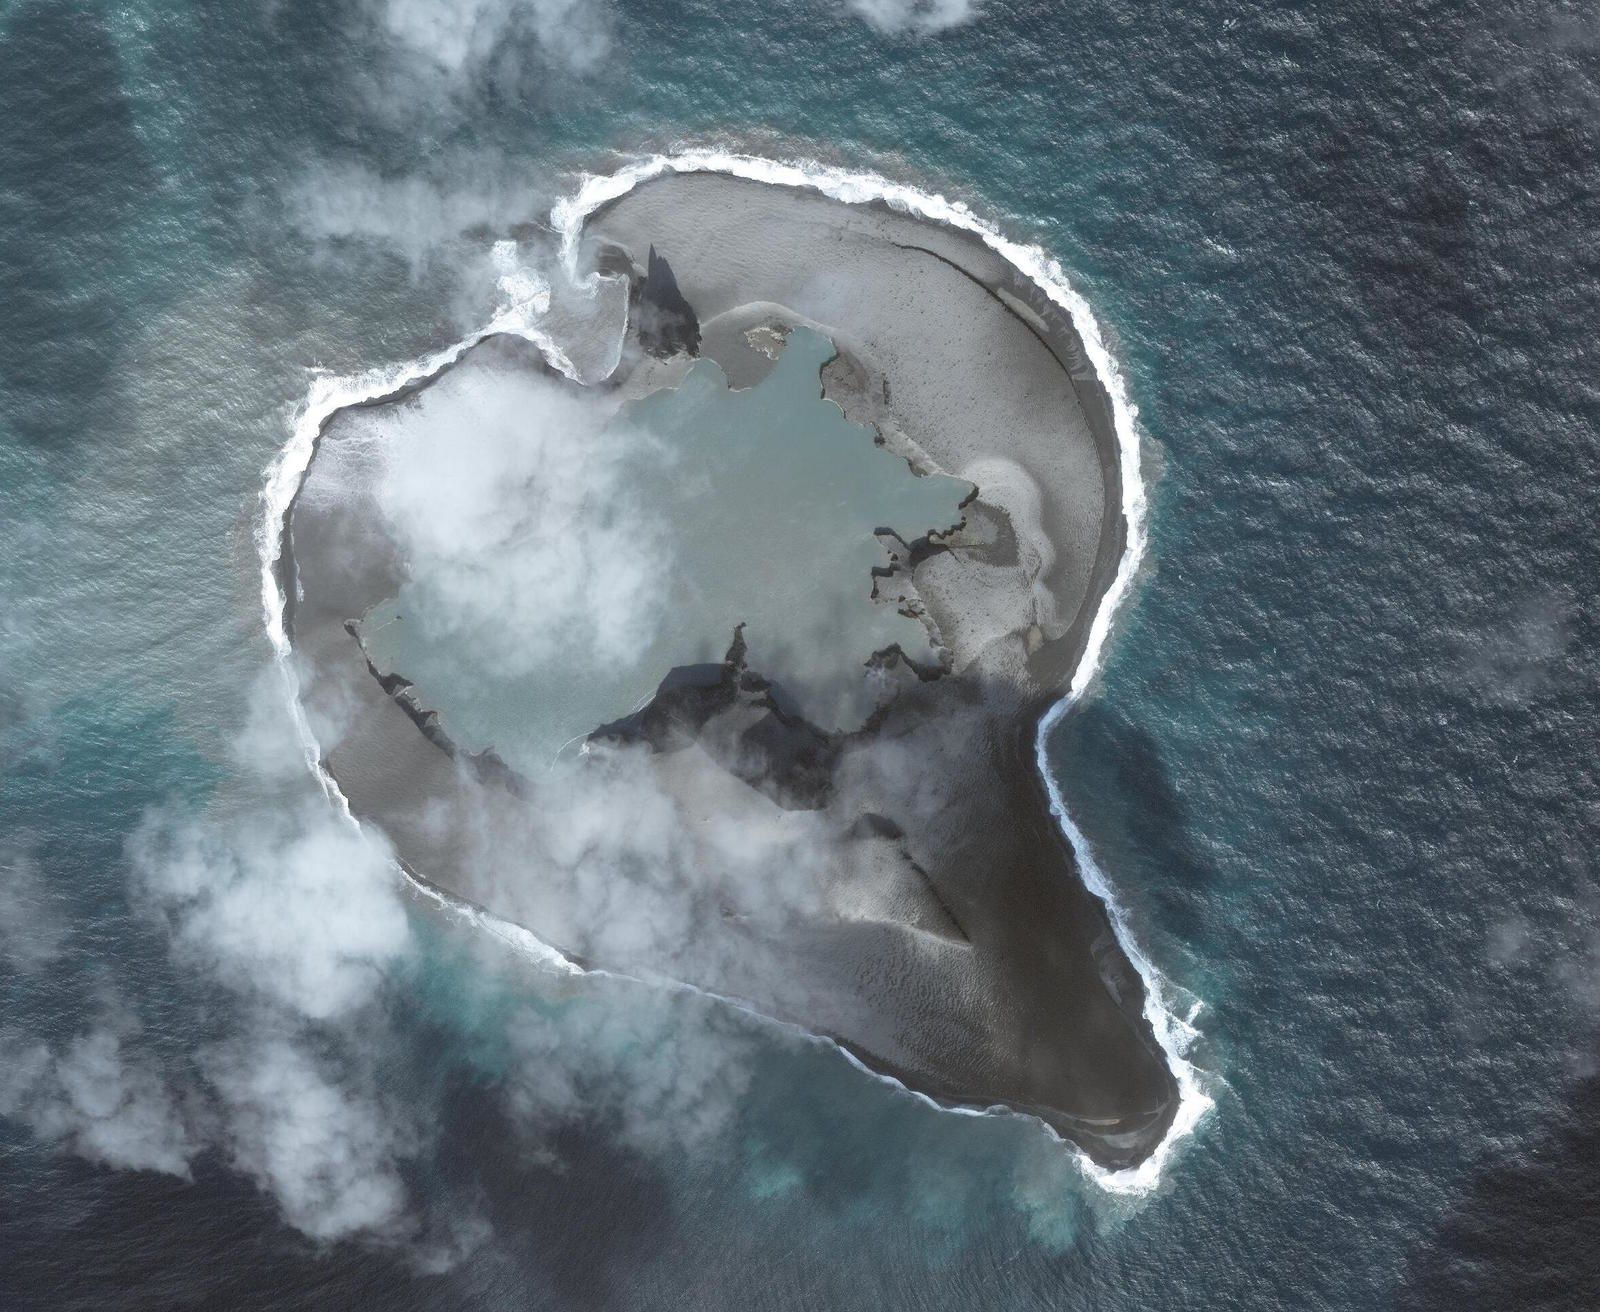 Bogoslof - morphological changes on 11.03.2017 - one click to enlarge - photo Dave Schneider / AVO / Worlview 2 sat Image data provided under Digital Globe NextView License.